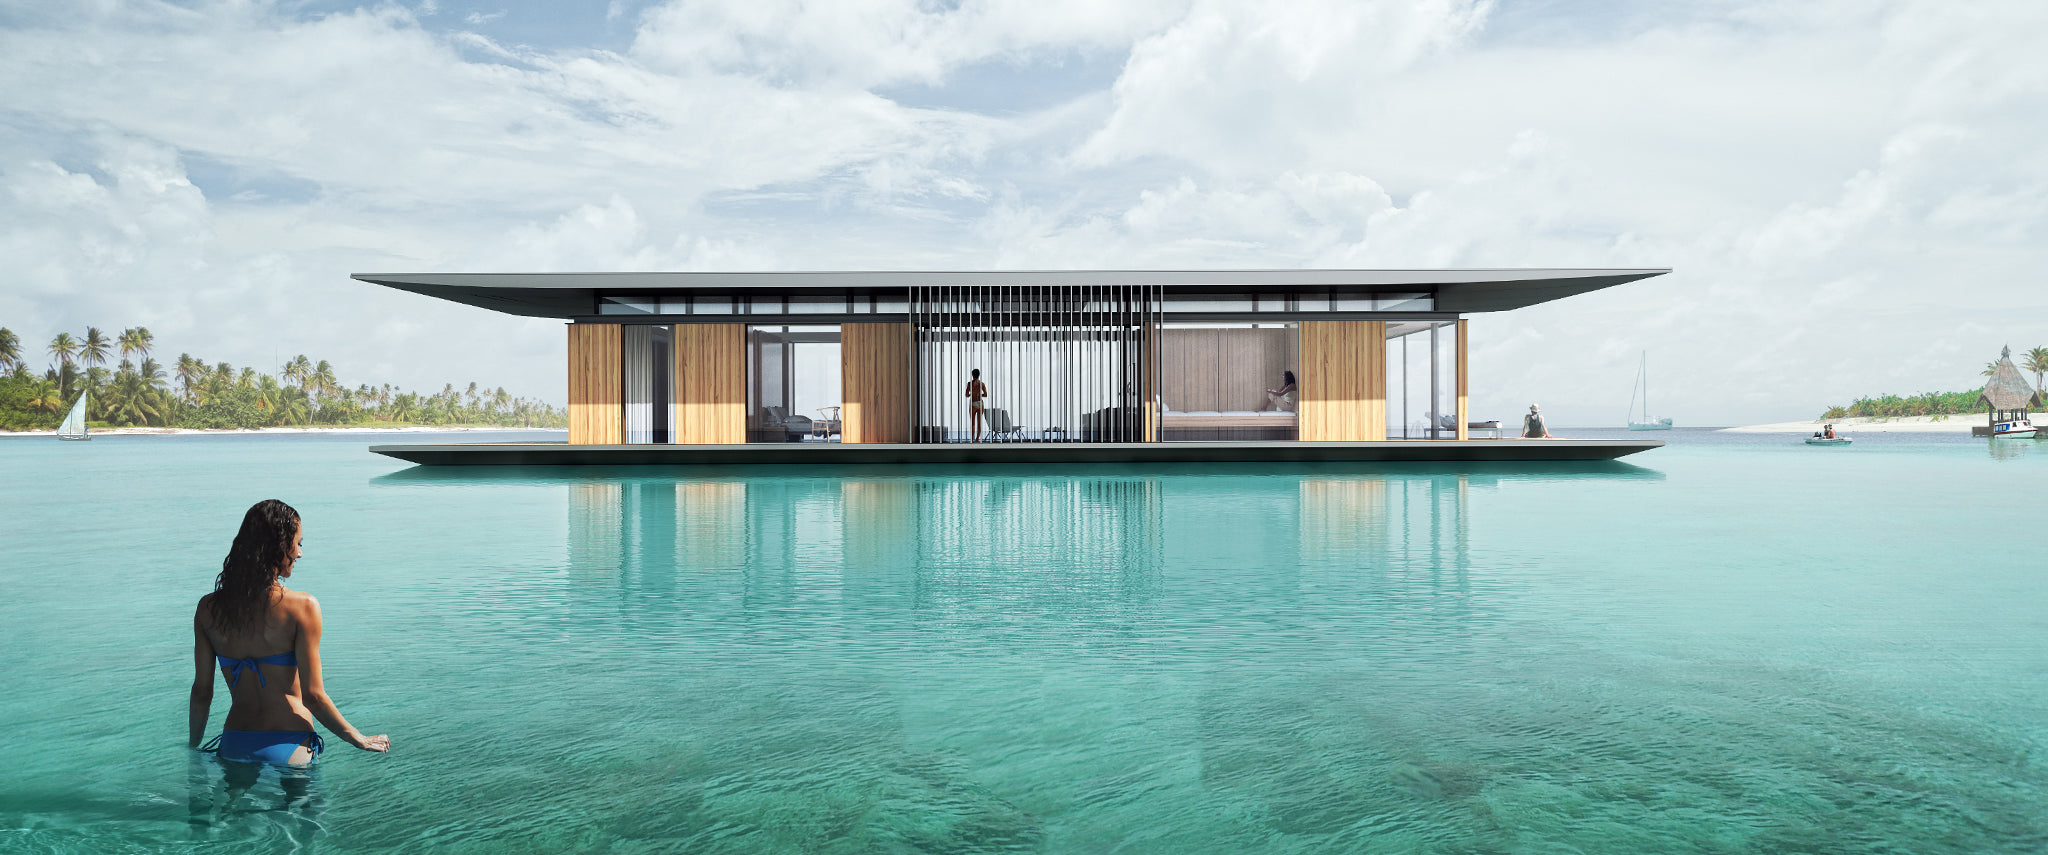 Bauhu Lifestyle floating homes